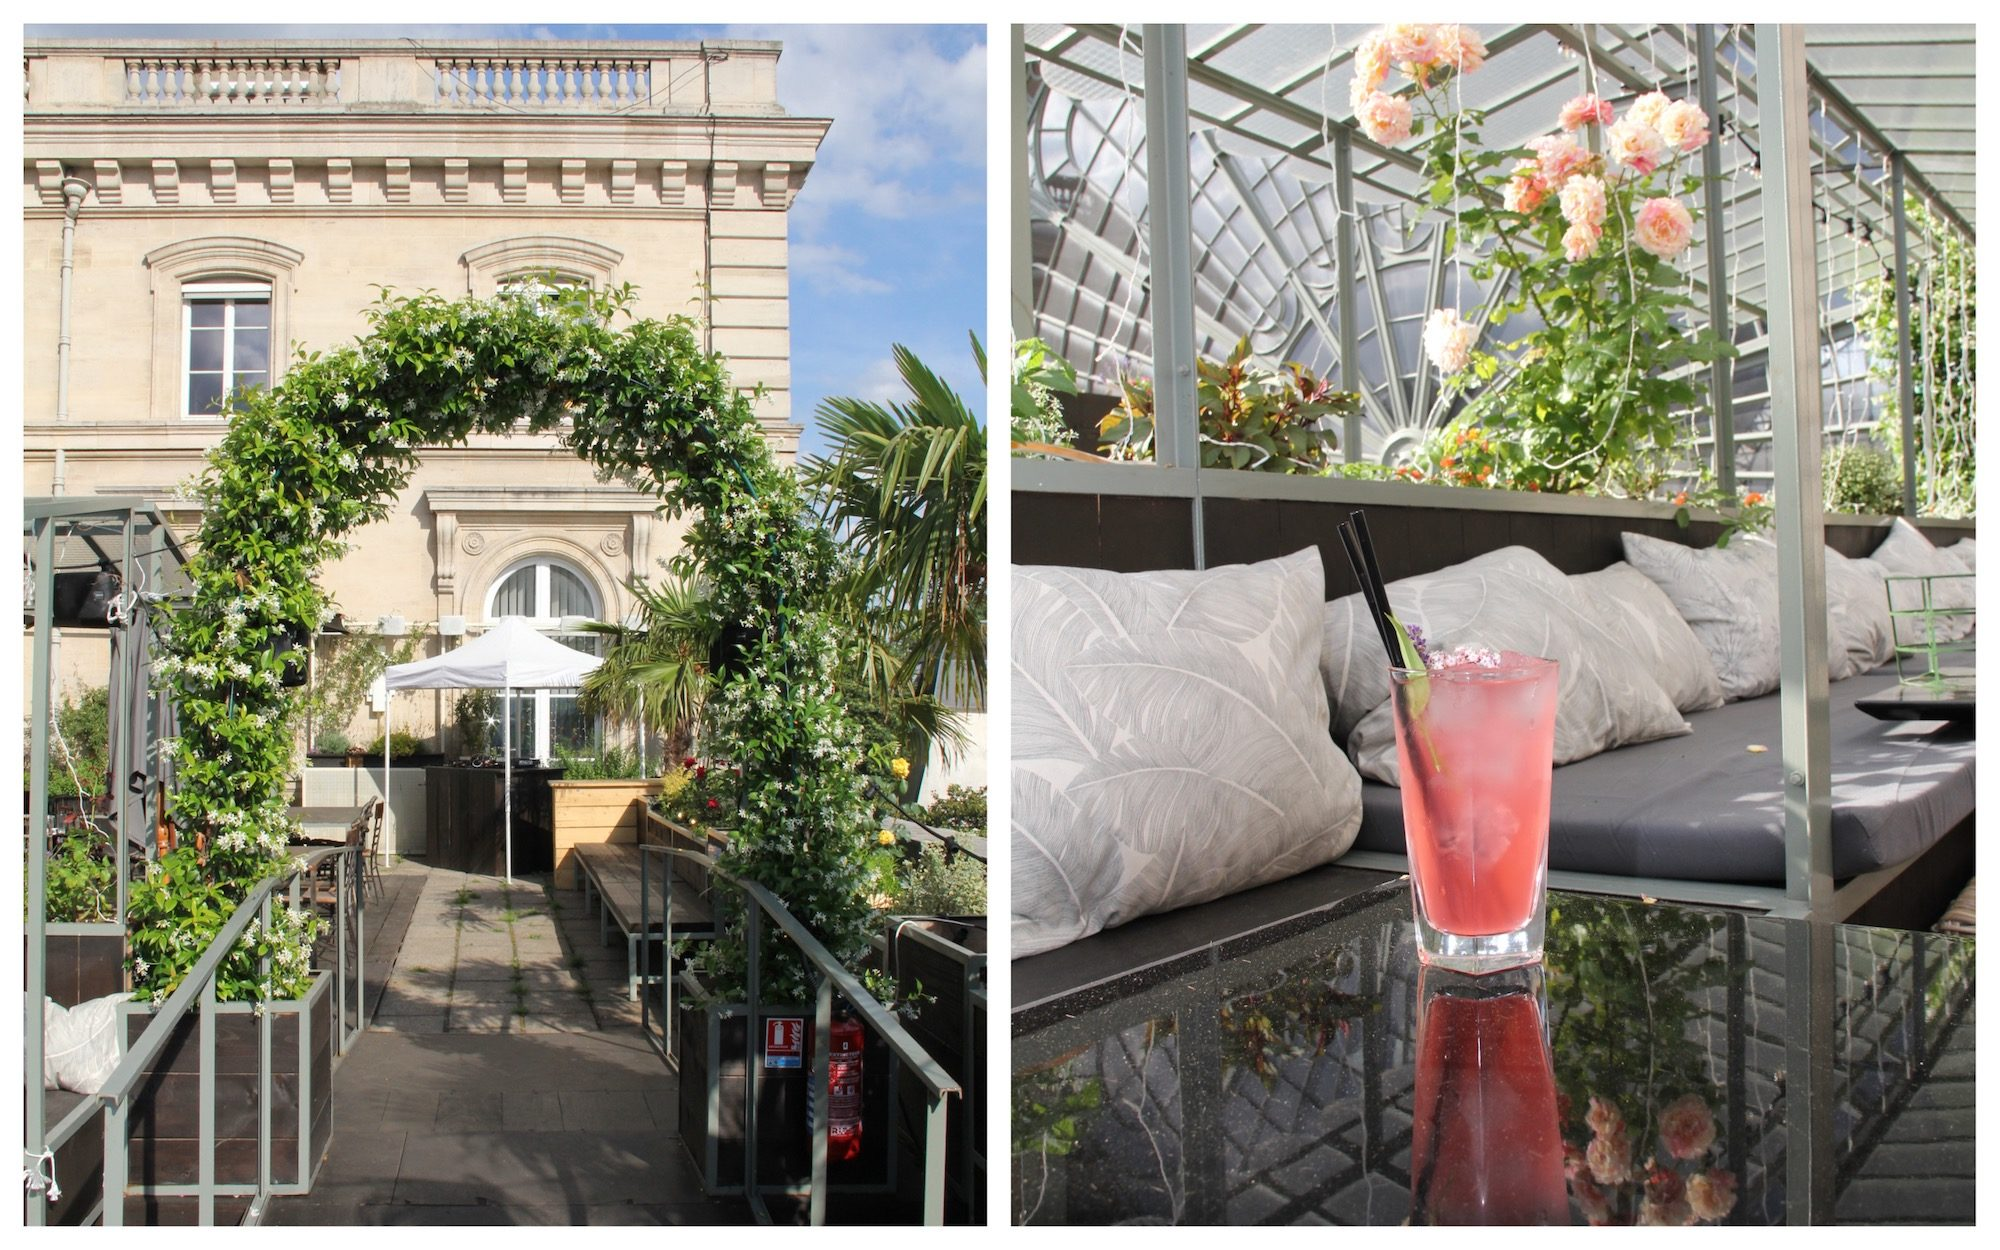 HiP Paris Blog rounds up Paris' best rooftop bars including Le Perchoir Gare de l'Est with its leafy arches (left) and shaded seating among rose bushes (right).